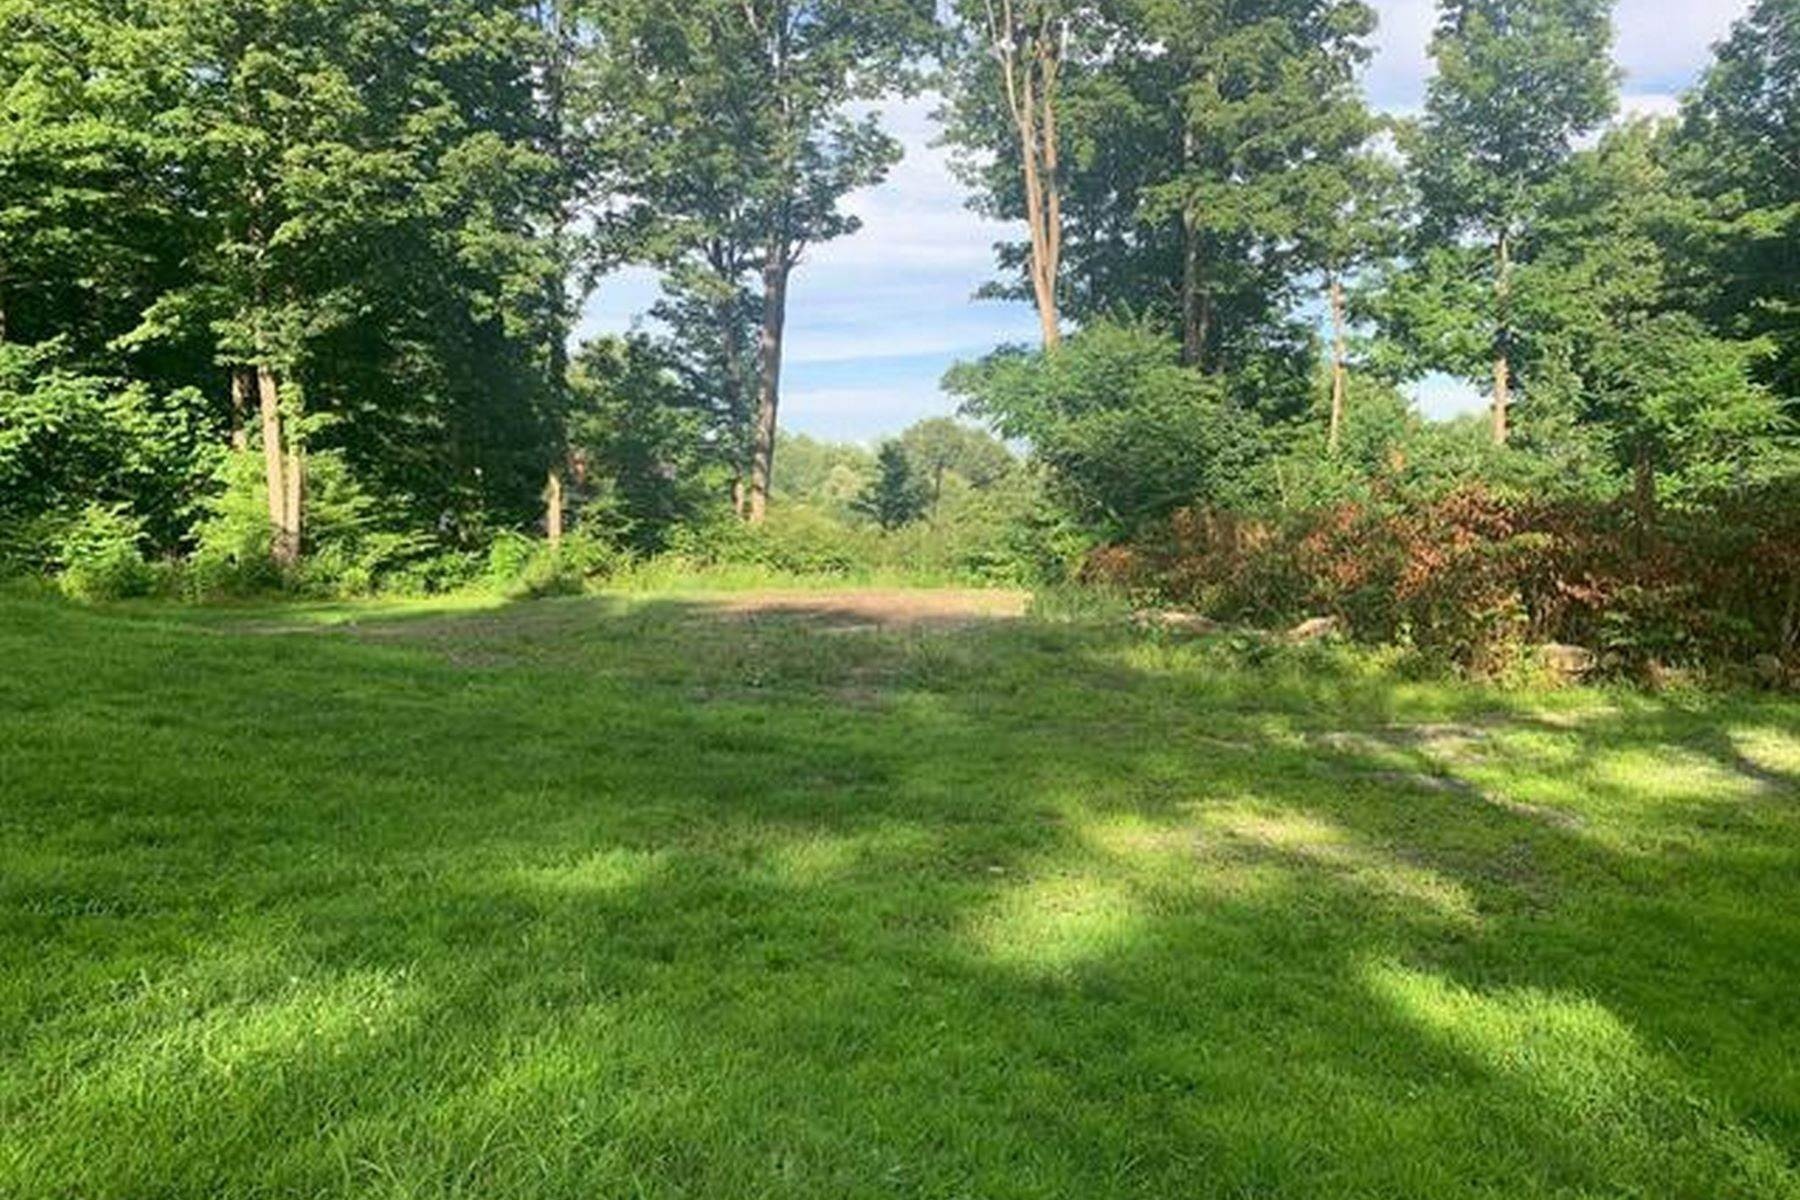 Land for Sale at Saratoga Springs Building Lot For You 183 Parkhurst Rd Wilton, New York 12831 United States